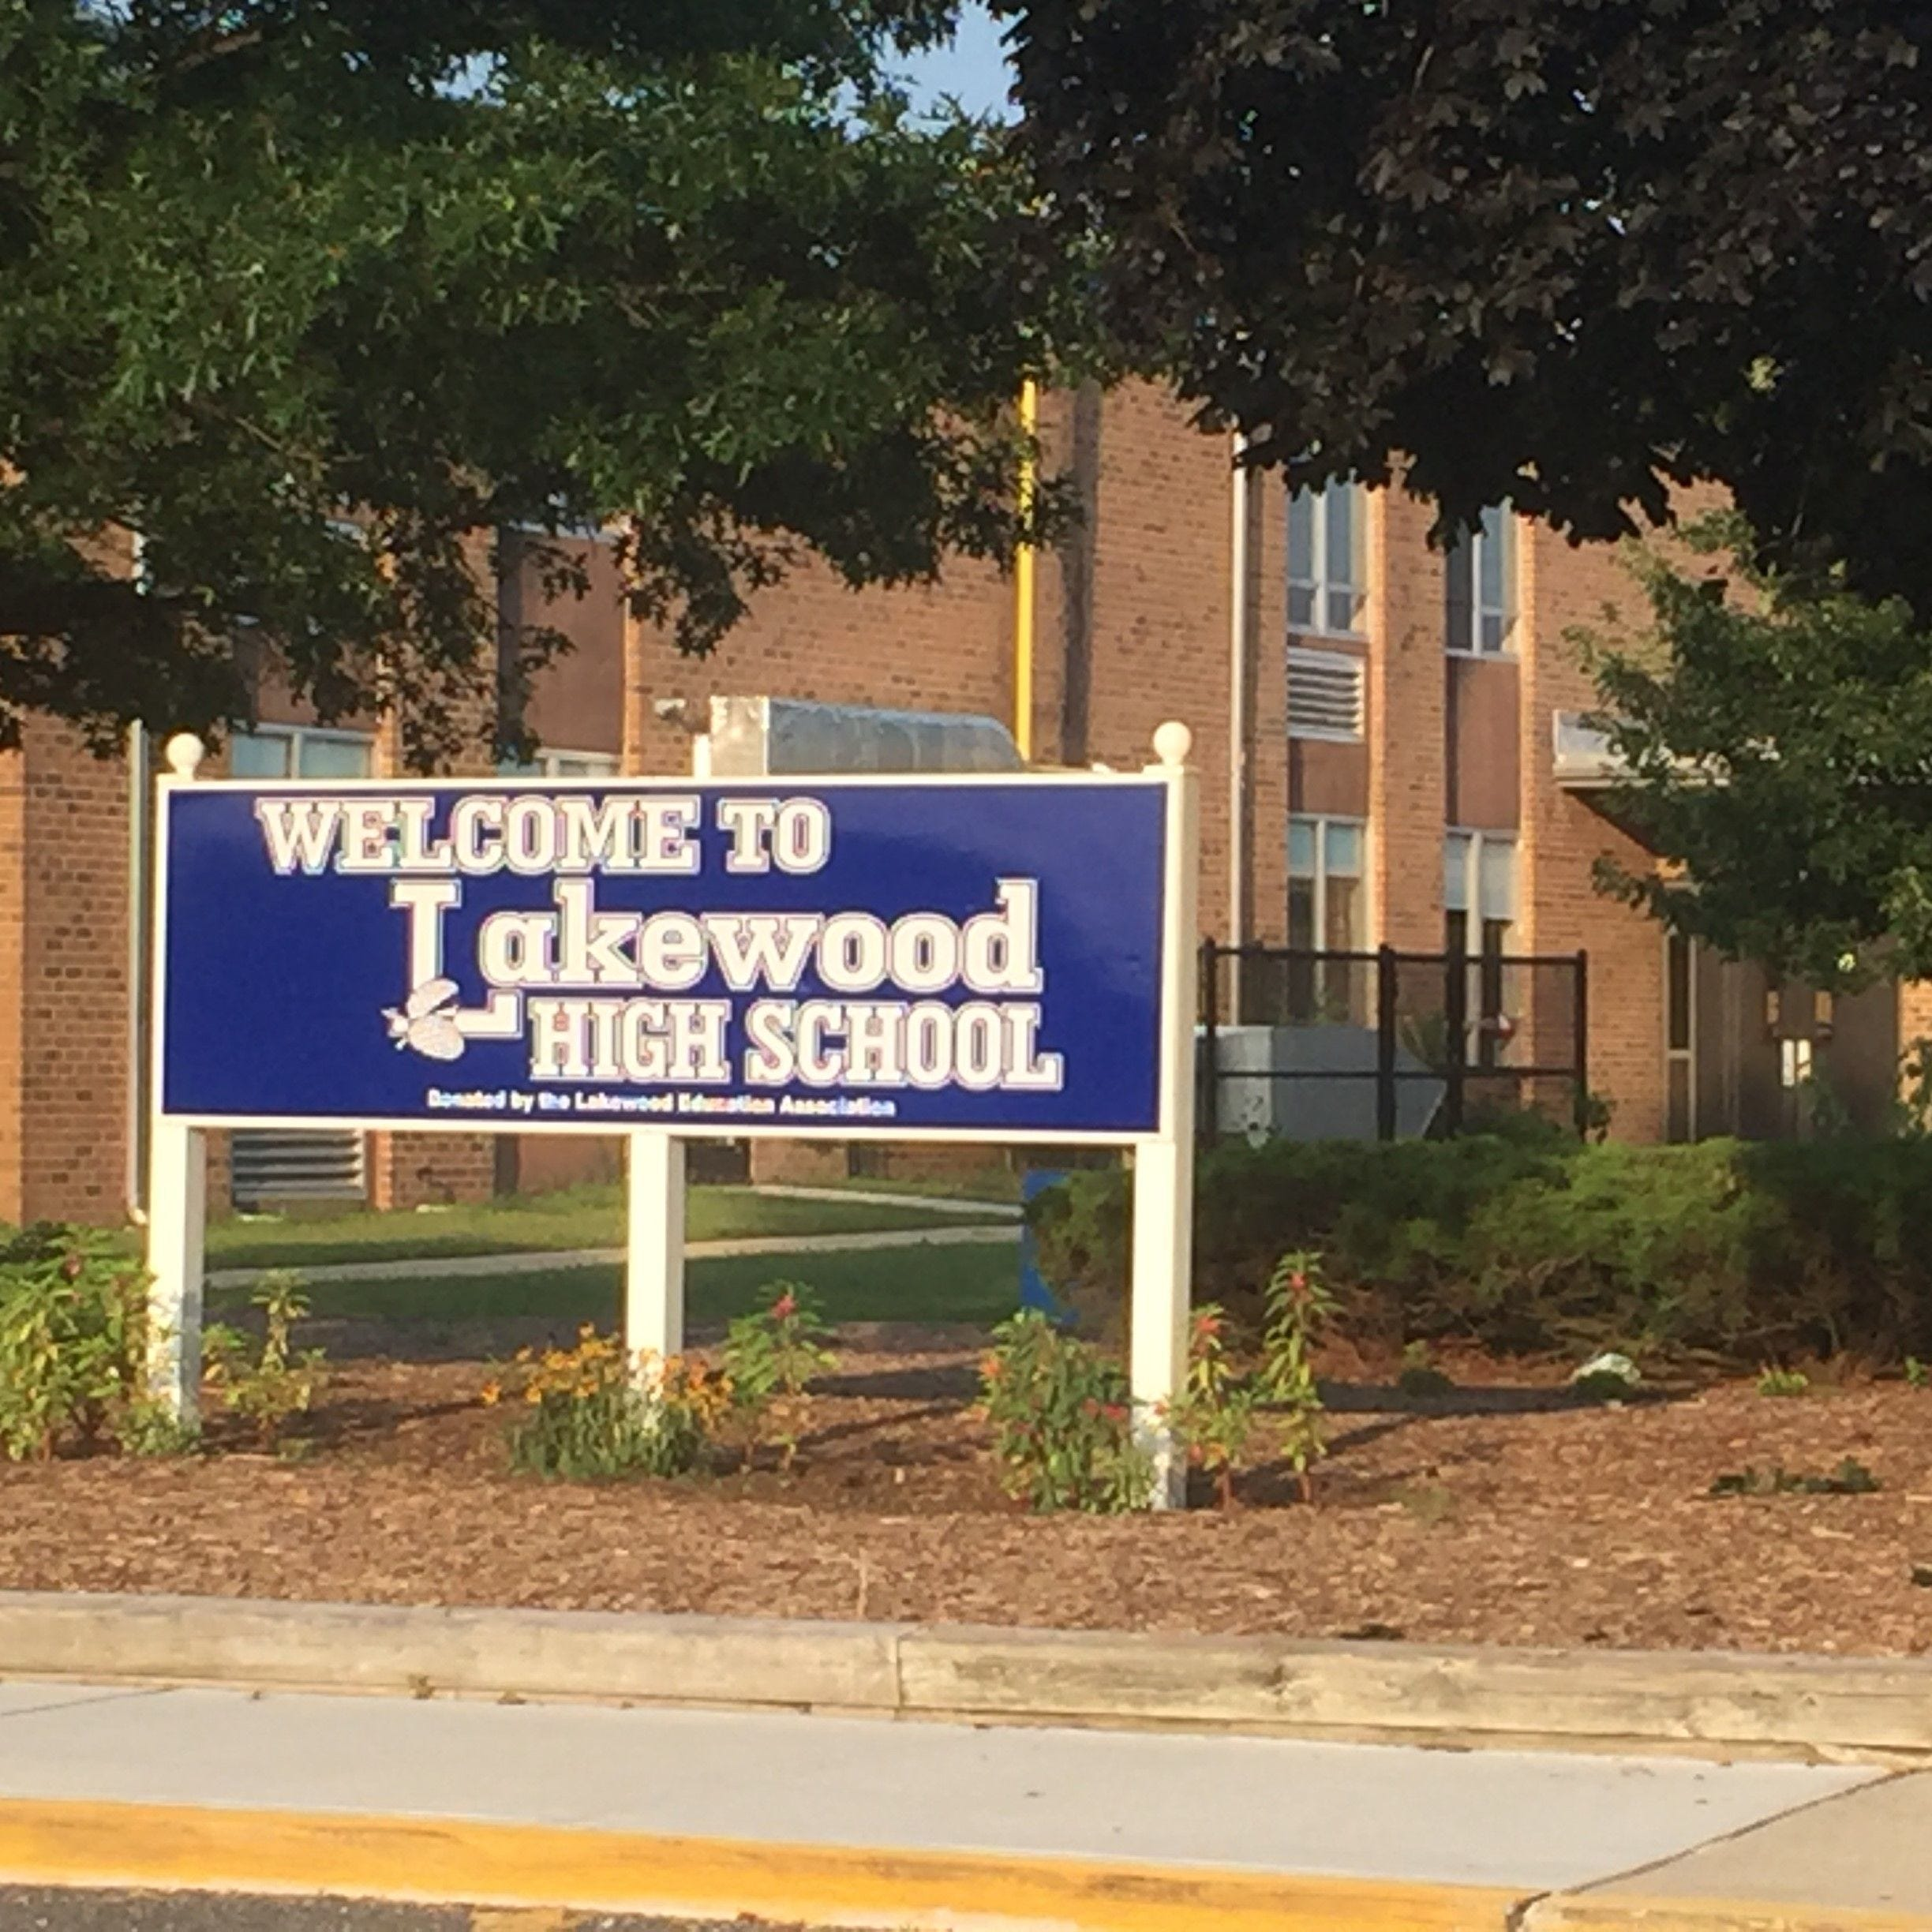 Lakewood schools get nearly $30 million from state, avoiding a loan